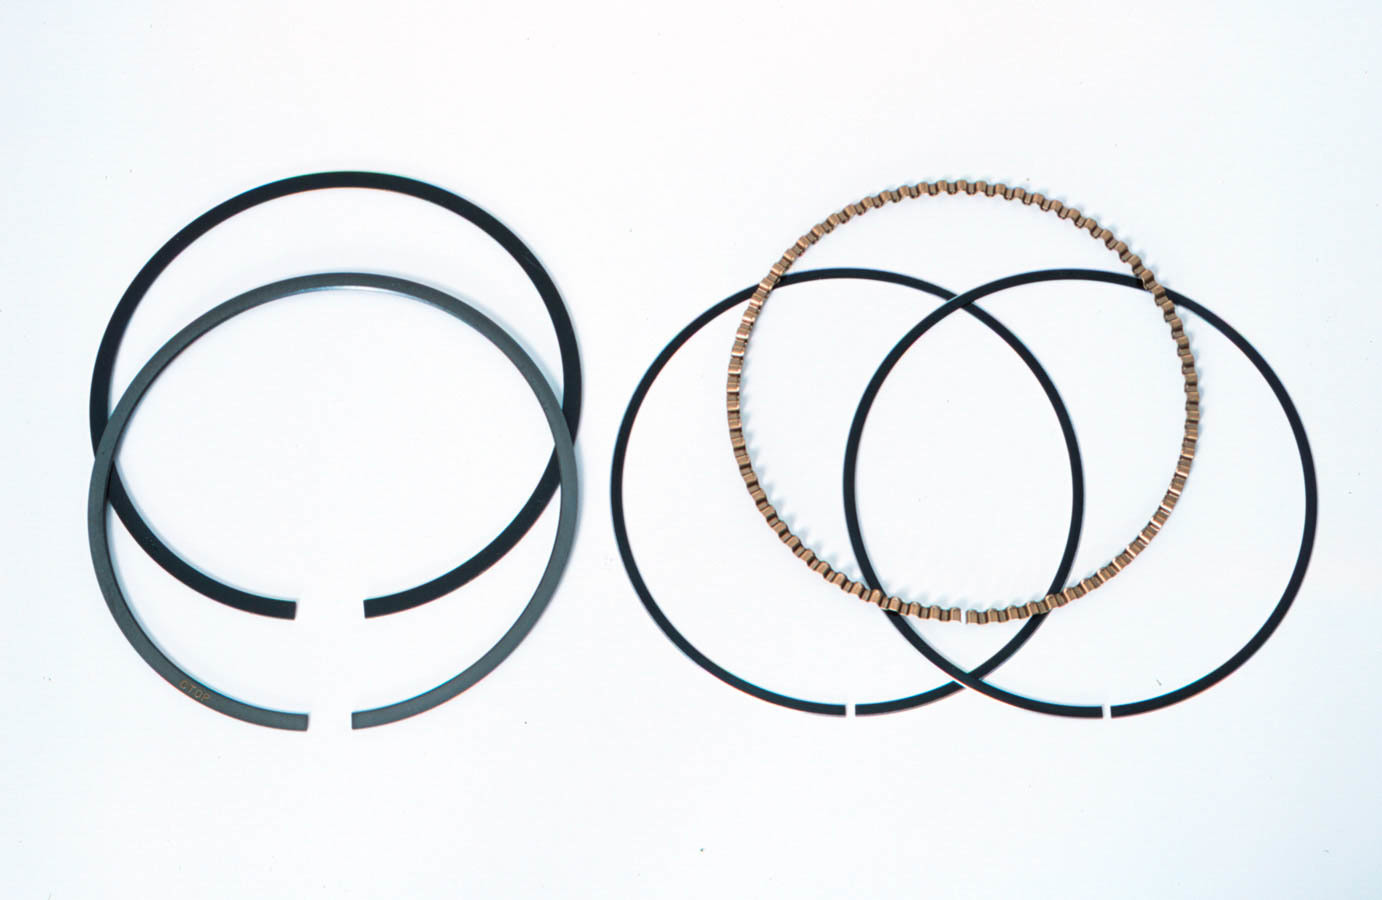 Mahle Pistons 4160ML Piston Rings, 4.155 in Bore, File Fit, 1/16 x 1/16 x 3/16 in Thick, Low Tension, Plasma Moly, 8 Cylinder, Kit